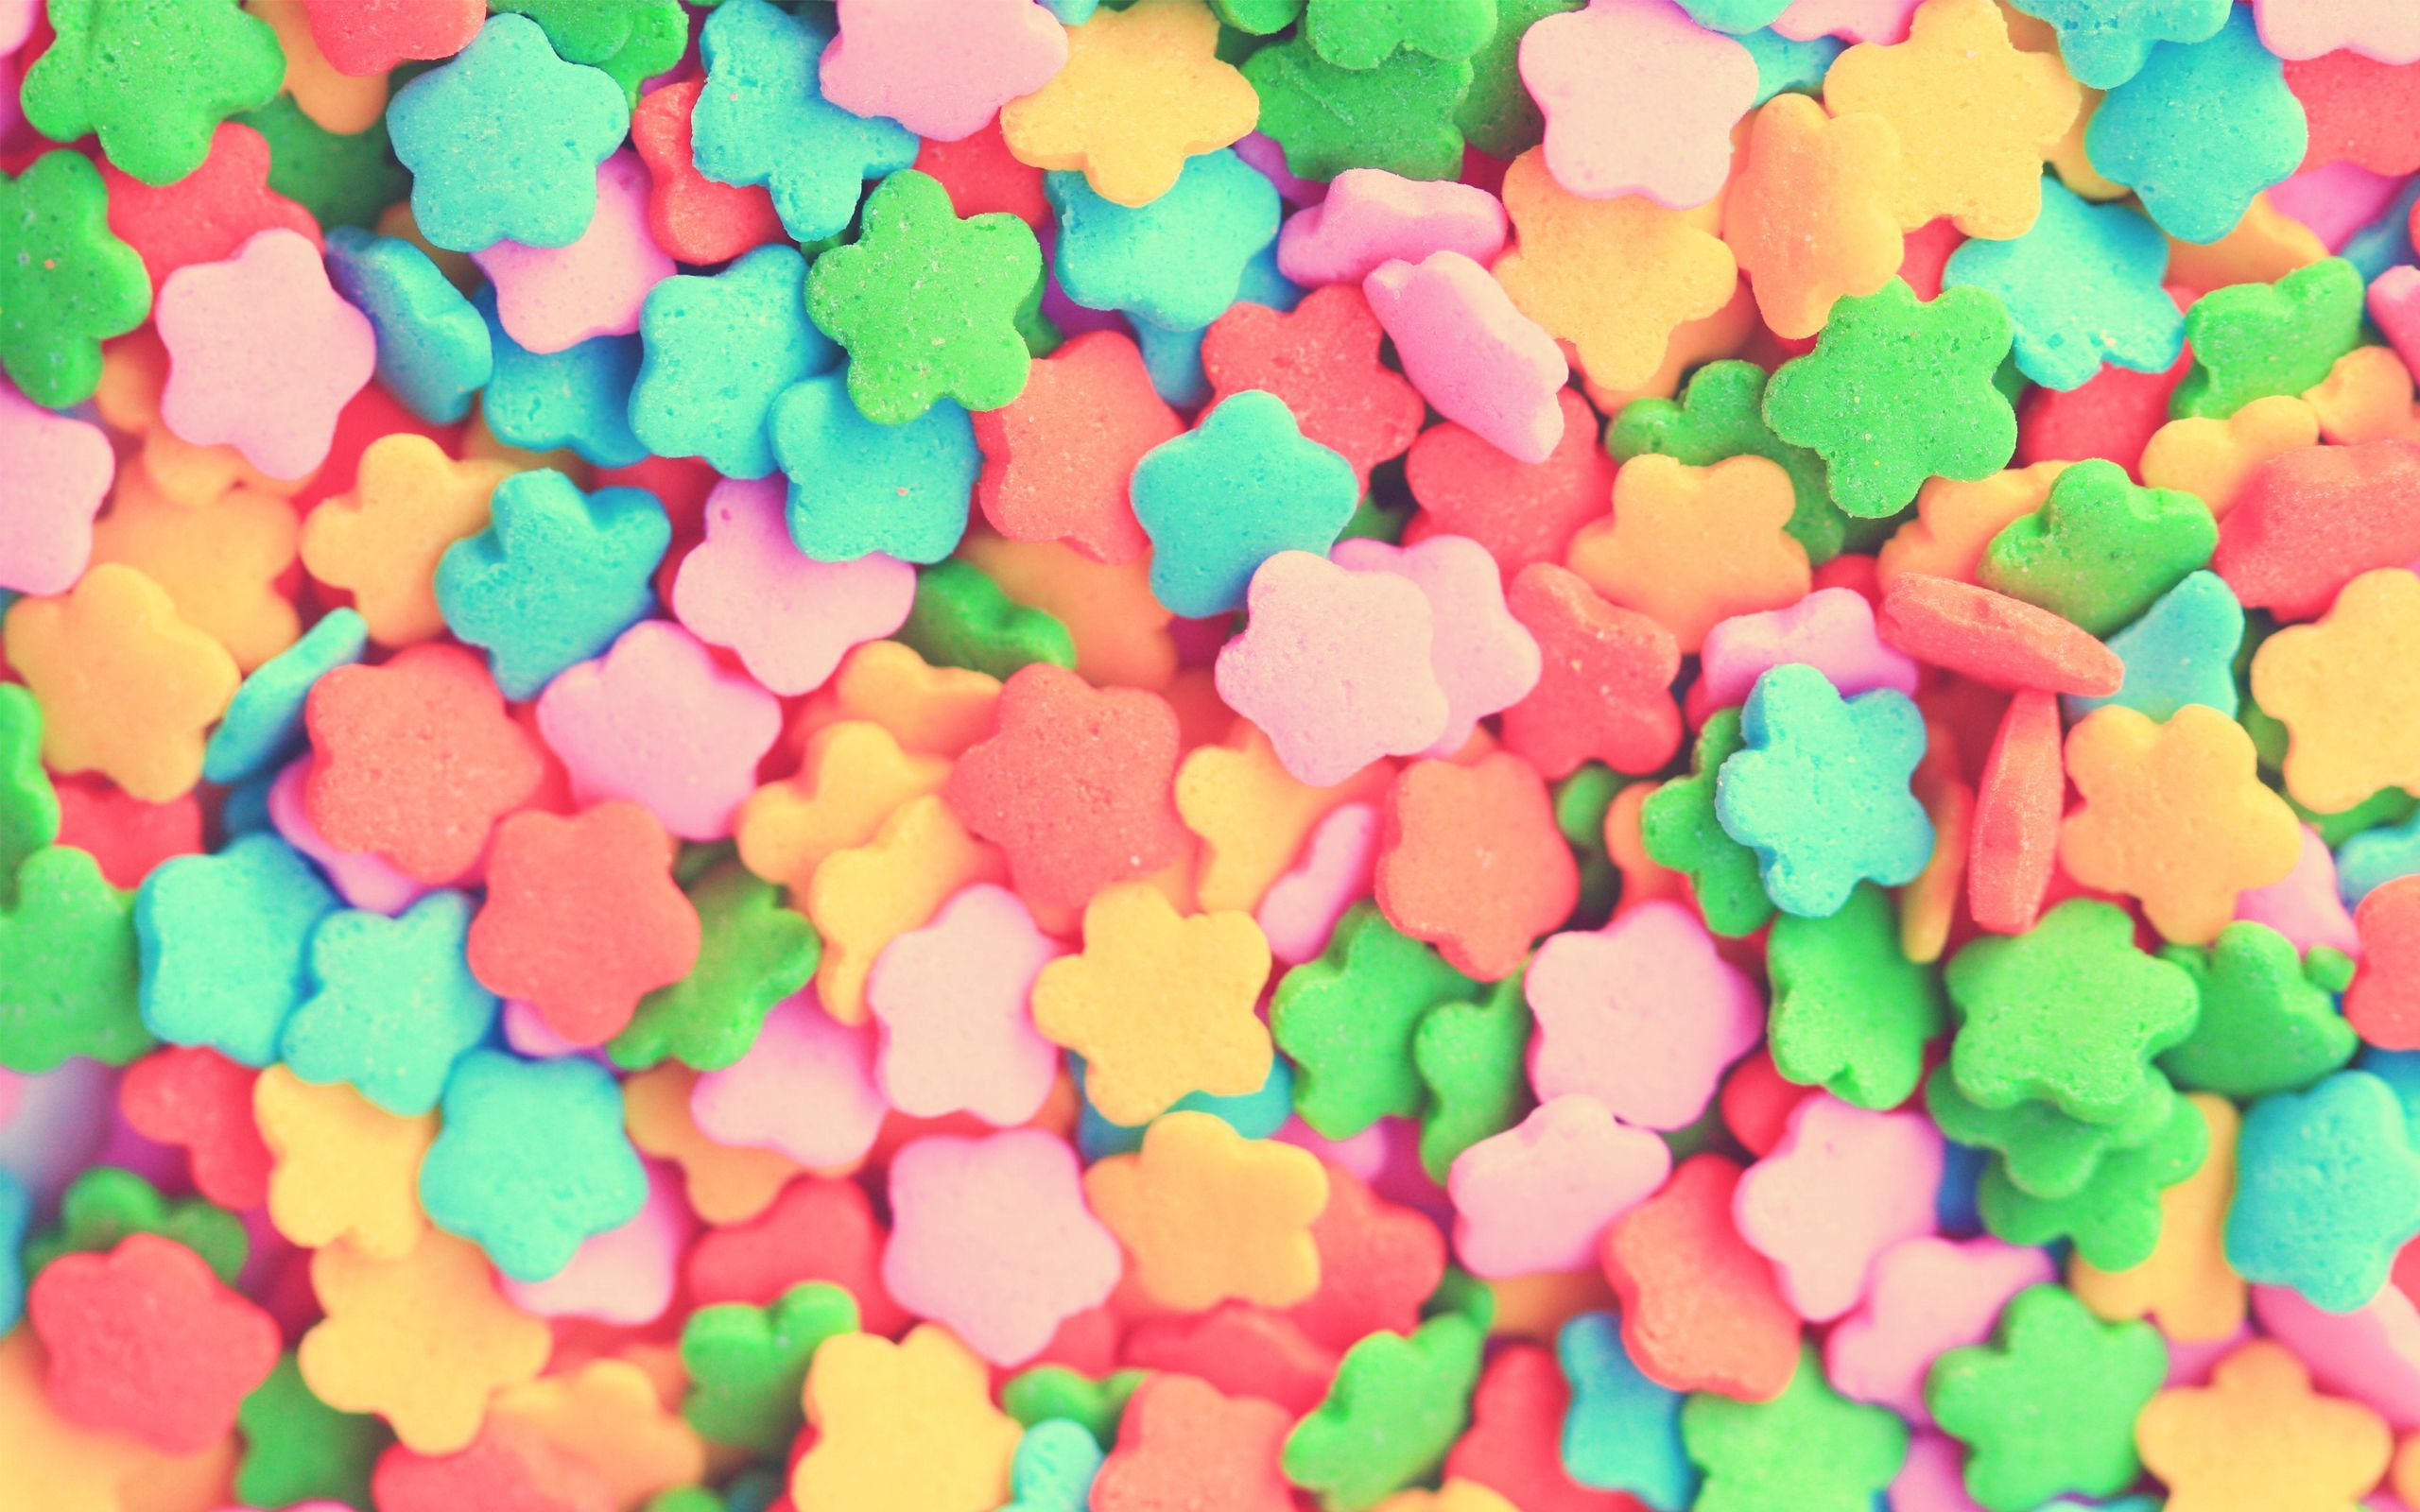 colorful candy wallpaper 8 - photo #21